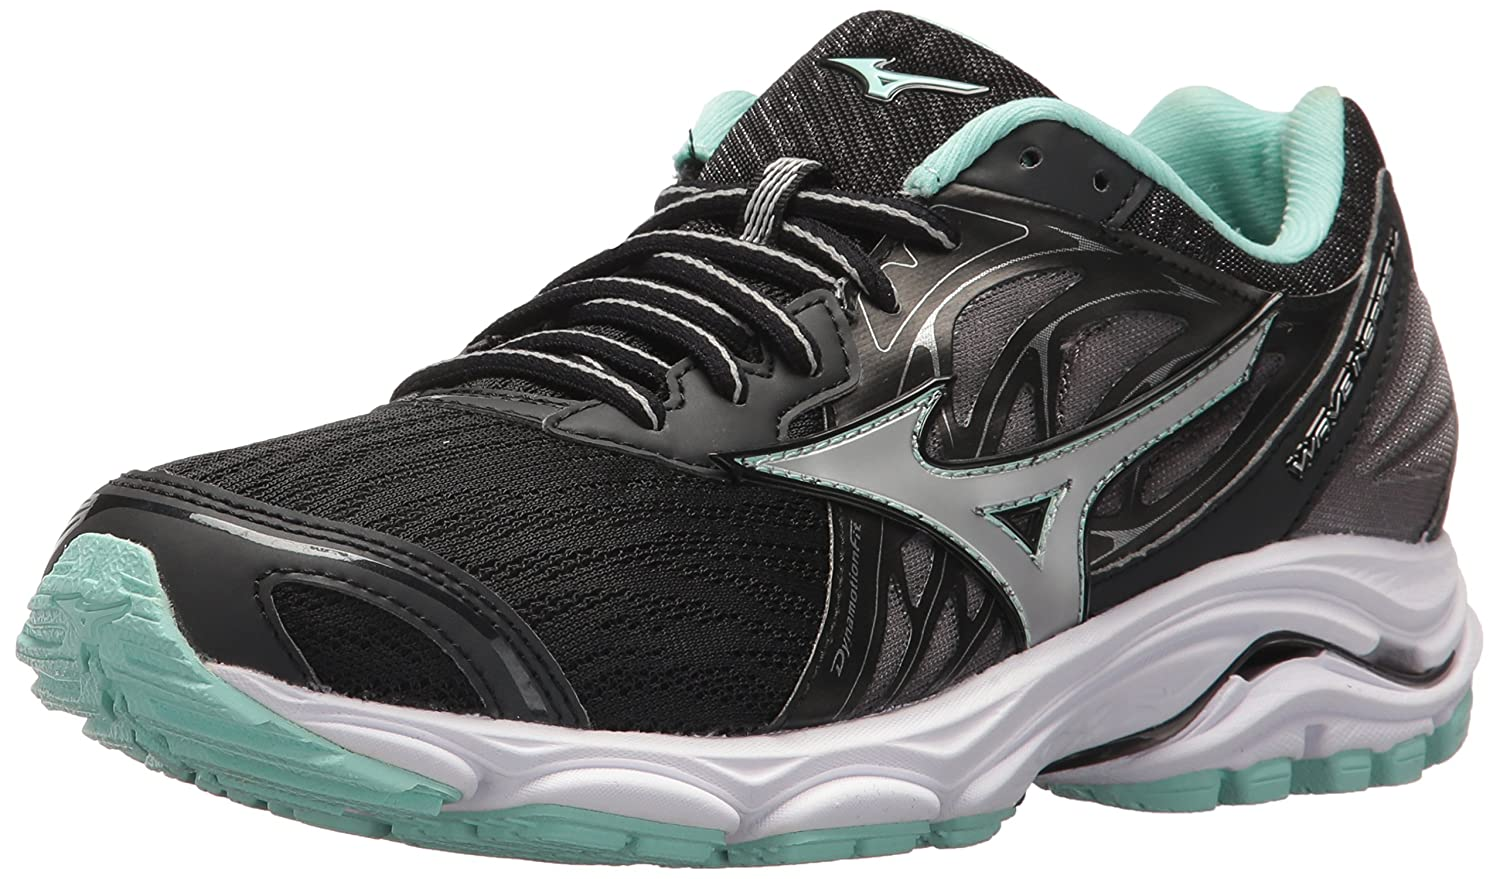 Mizuno Women's Wave Inspire 14 Running Shoe B071VC46Y6 9 B(M) US|Black/Silver